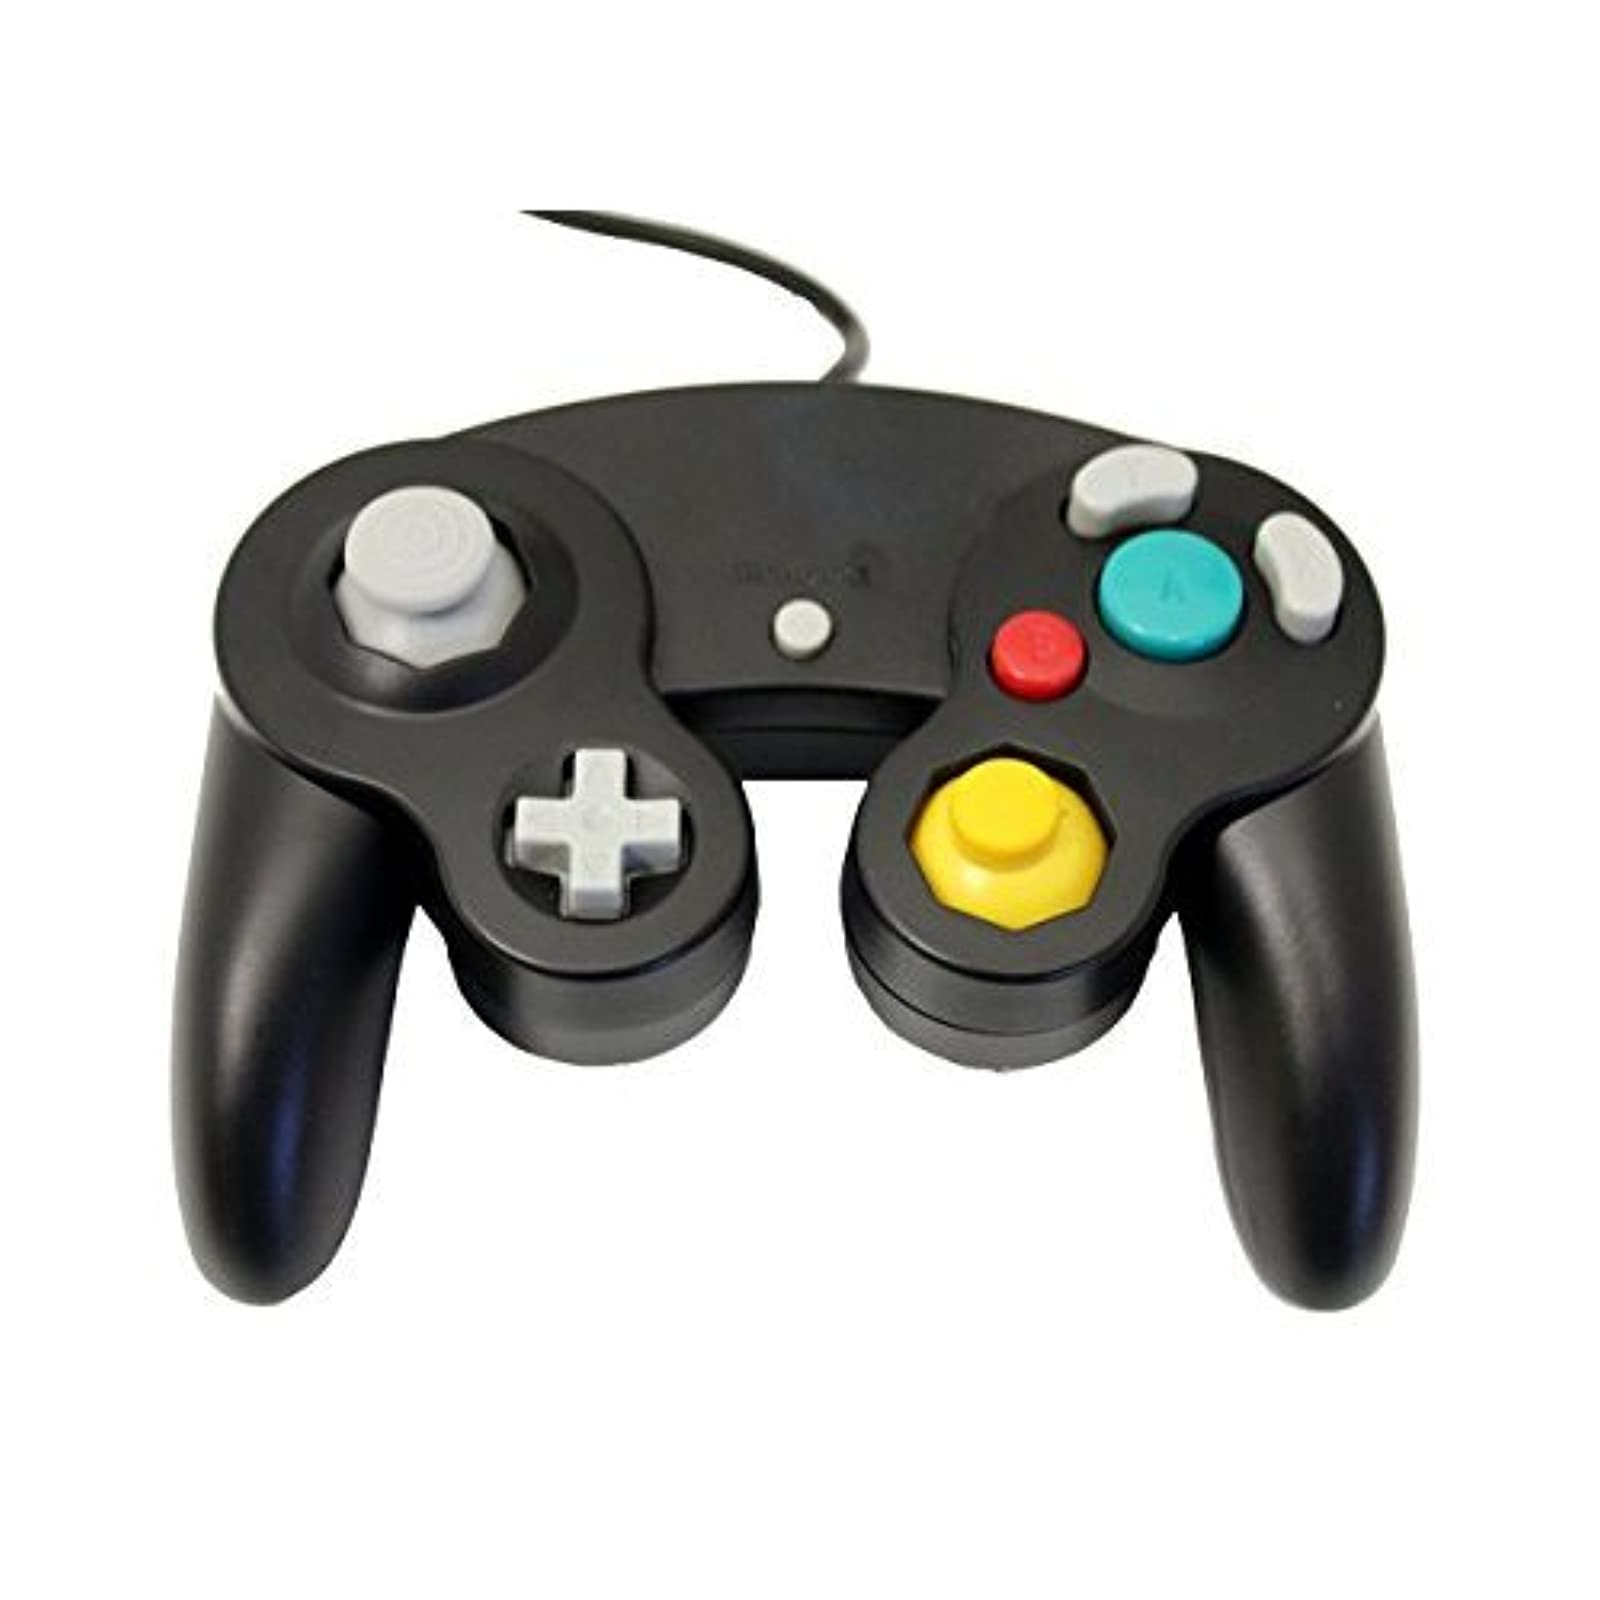 GameCube USB Controller Black For Windows MAC And Linux By Mars